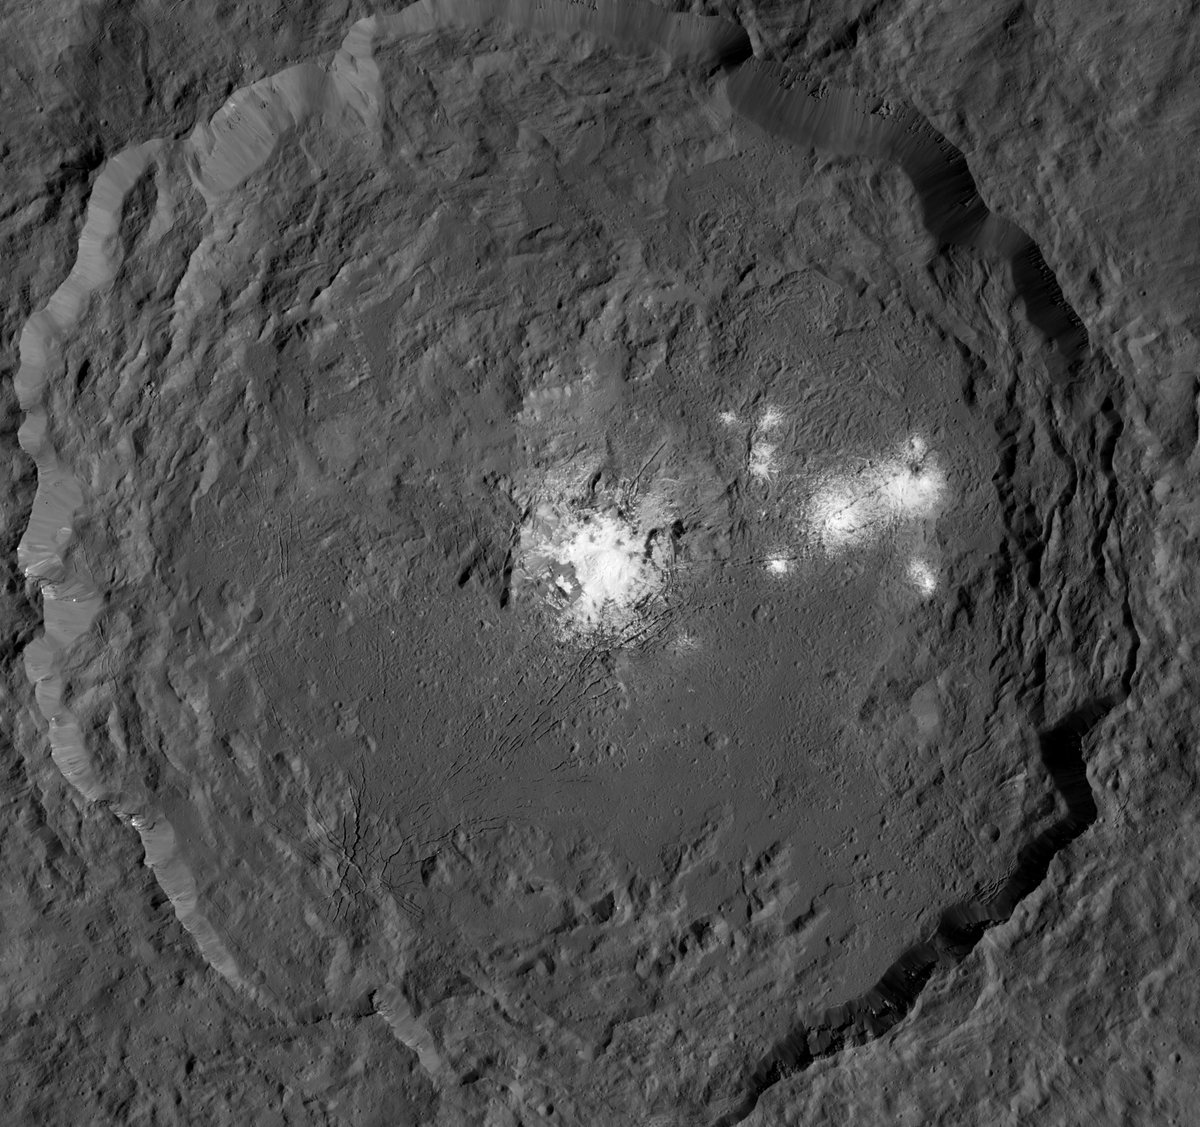 At long last, I bring you close-ups of #Ceres' bright spots https://t.co/Z1bXEQrxM1 https://t.co/oL7kzlwmrm